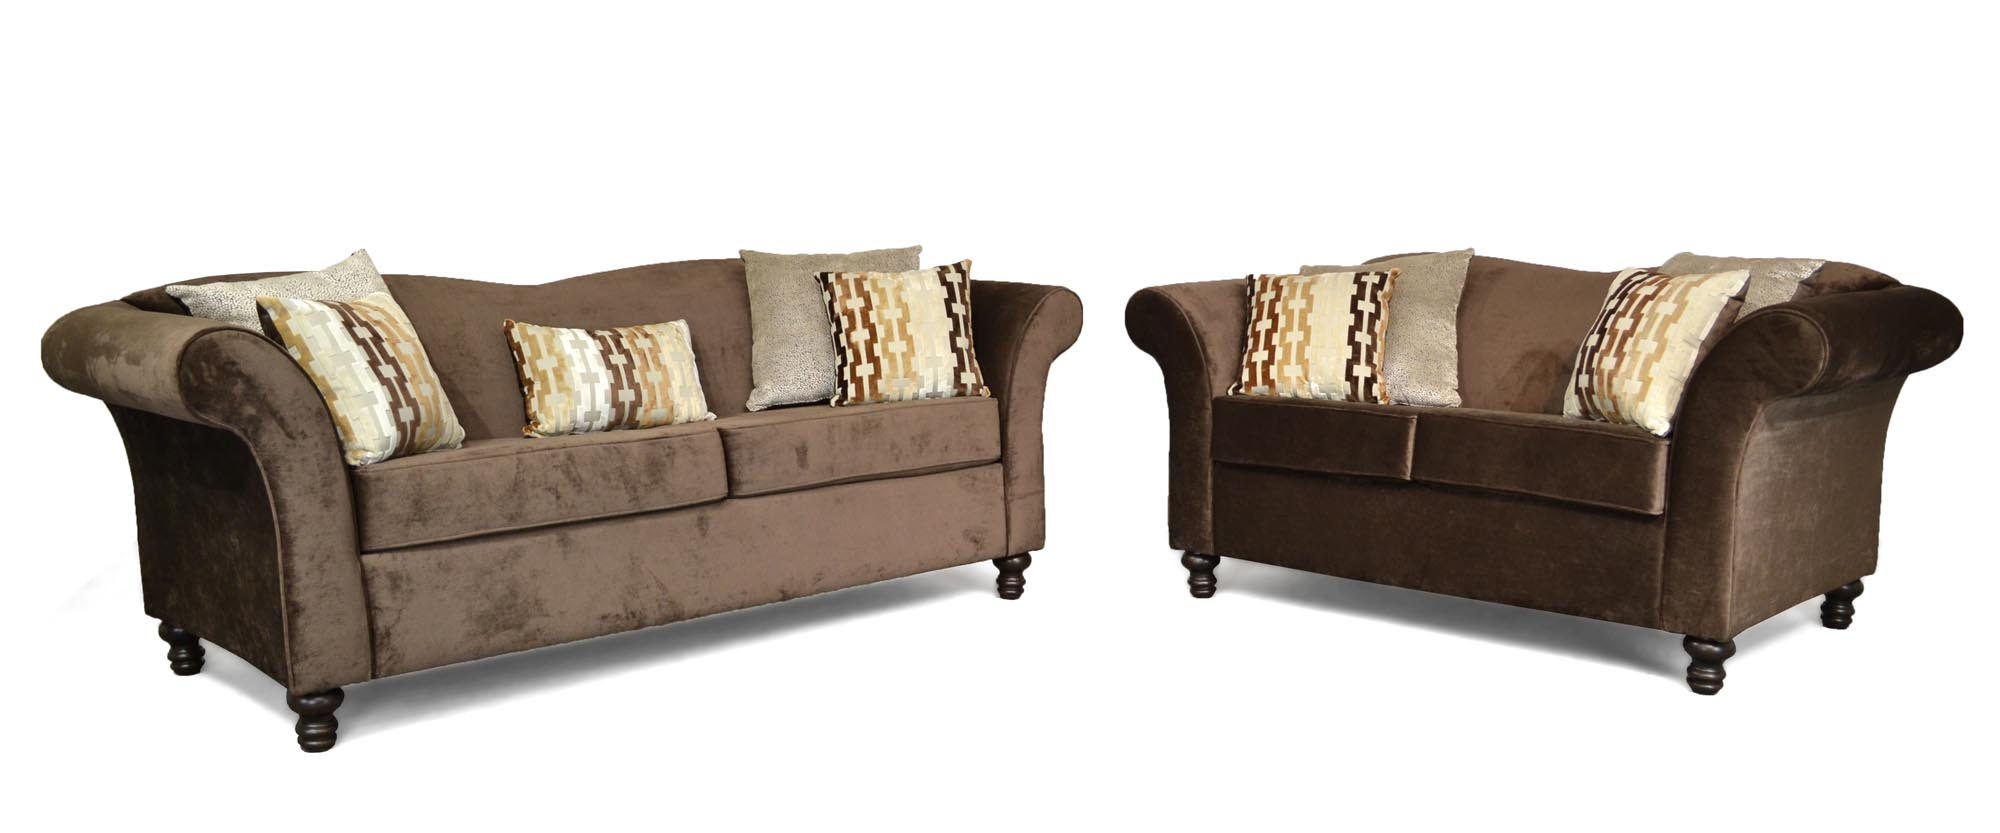 Furniture clearance center upholstered for Bedroom furniture greensboro nc